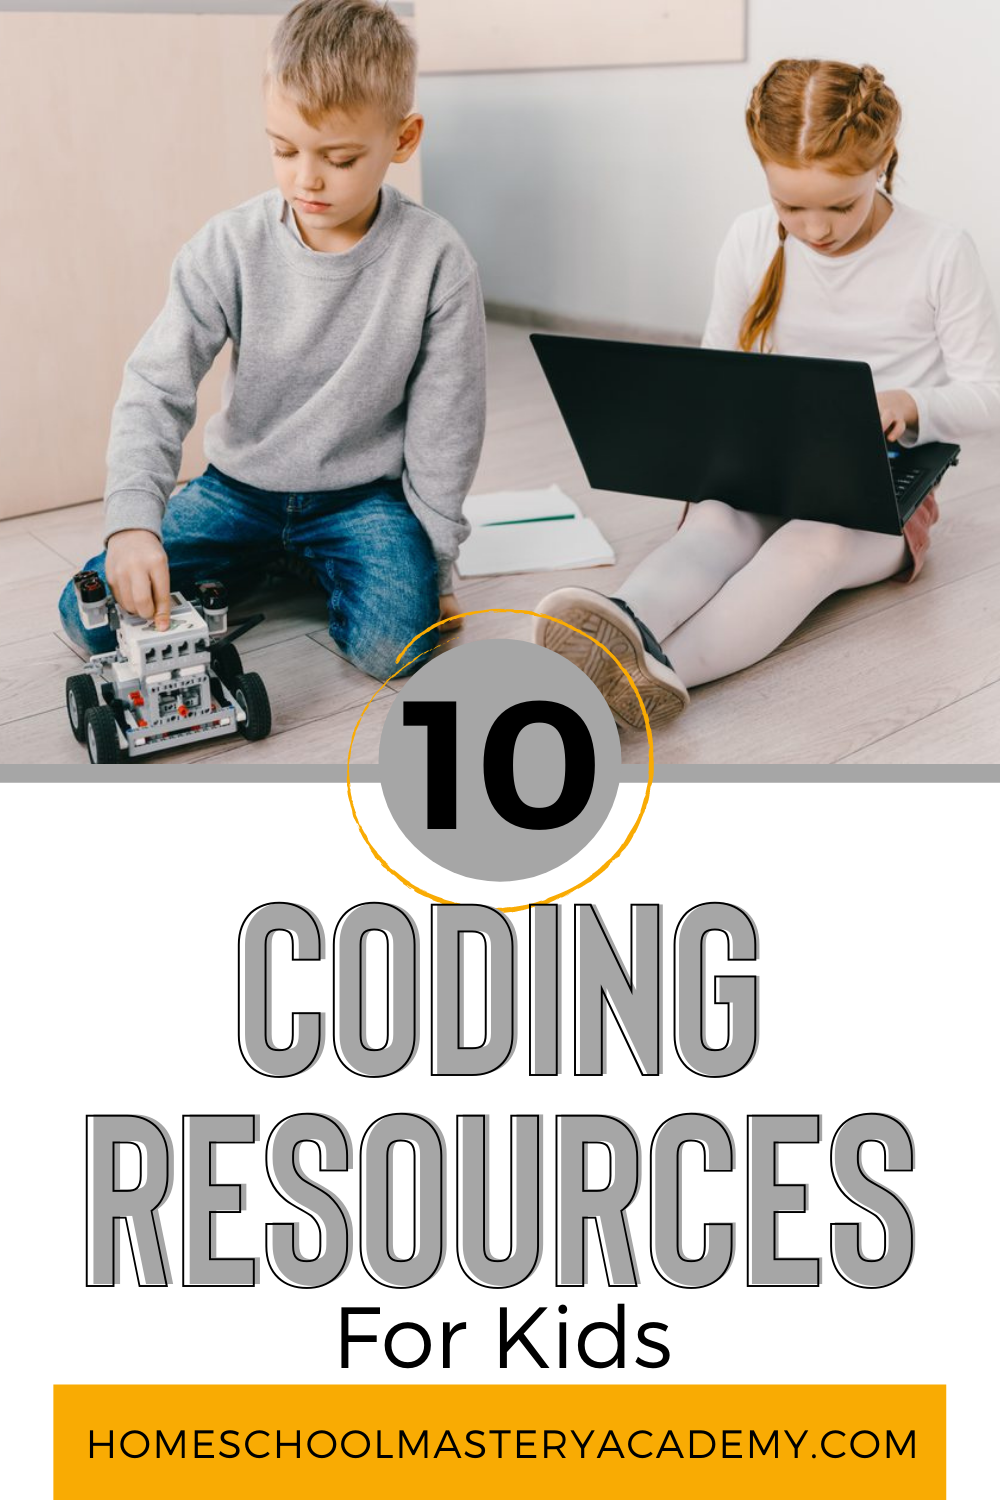 Our kids can have a huge advantage if they start learning how to code at an early age. Here are 10 resources for kids to start coding. #coding #codingforkids #kidscode #codinggames #homeschool